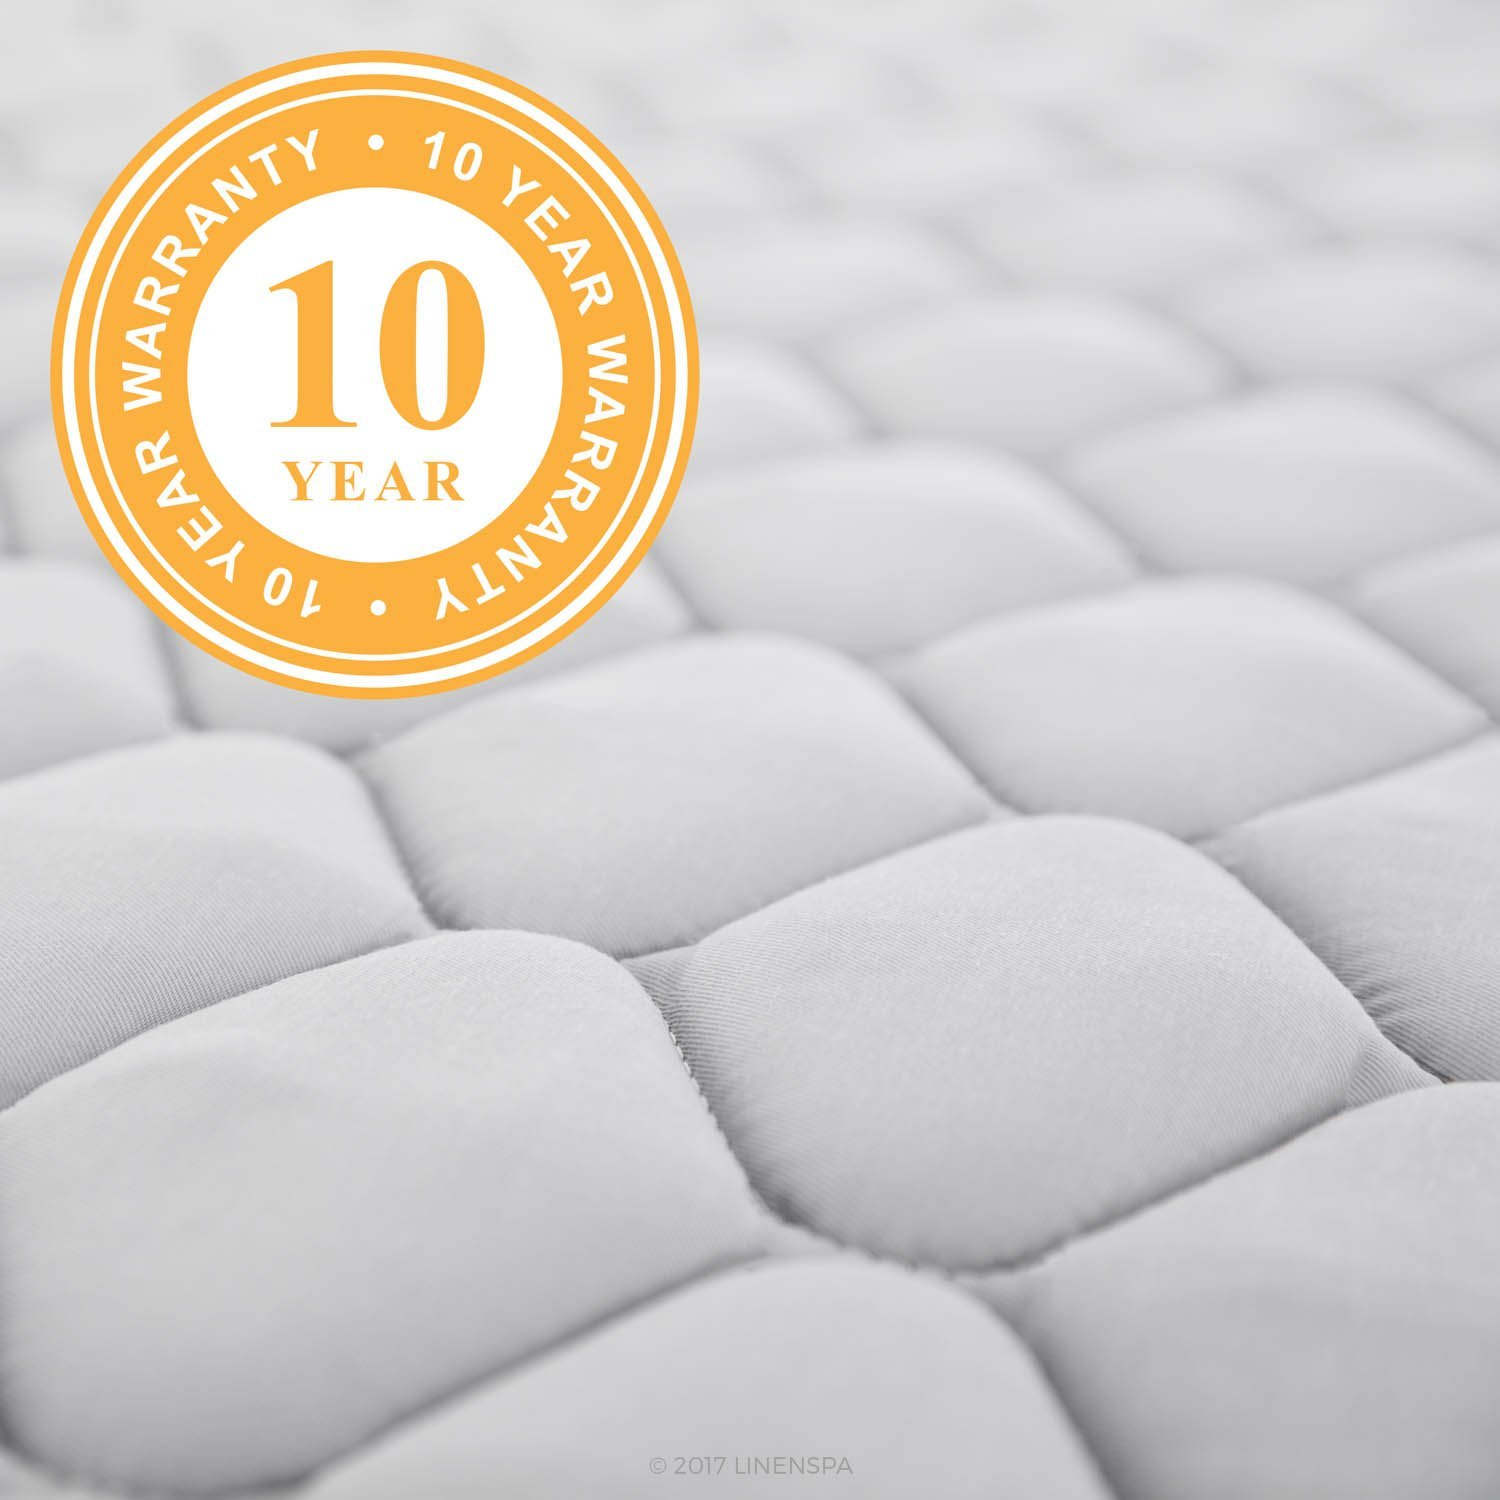 LinenSpa 6 Inch Innerspring Mattress Warranty